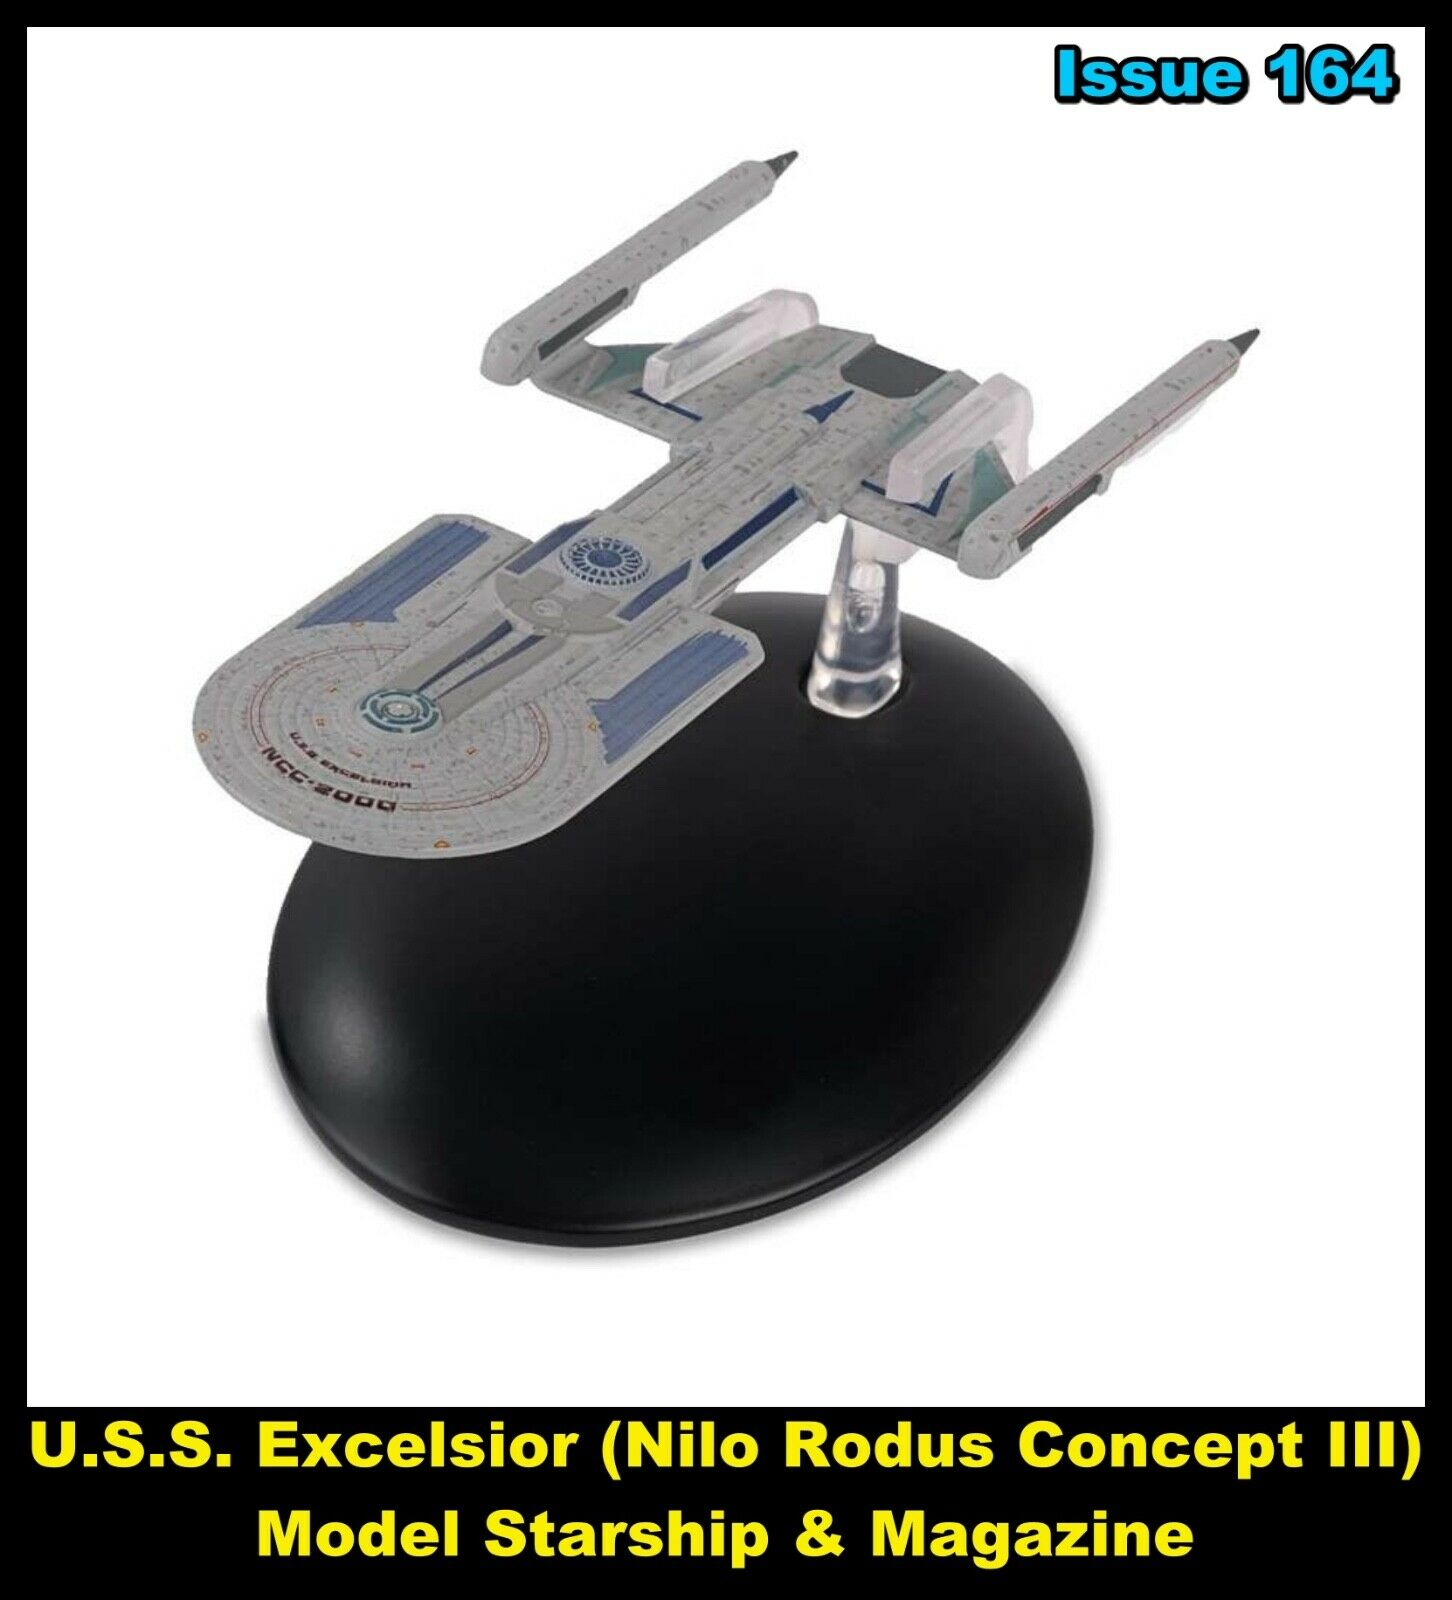 Issue 164: USS Excelsior (Nilo Rodus Concept III